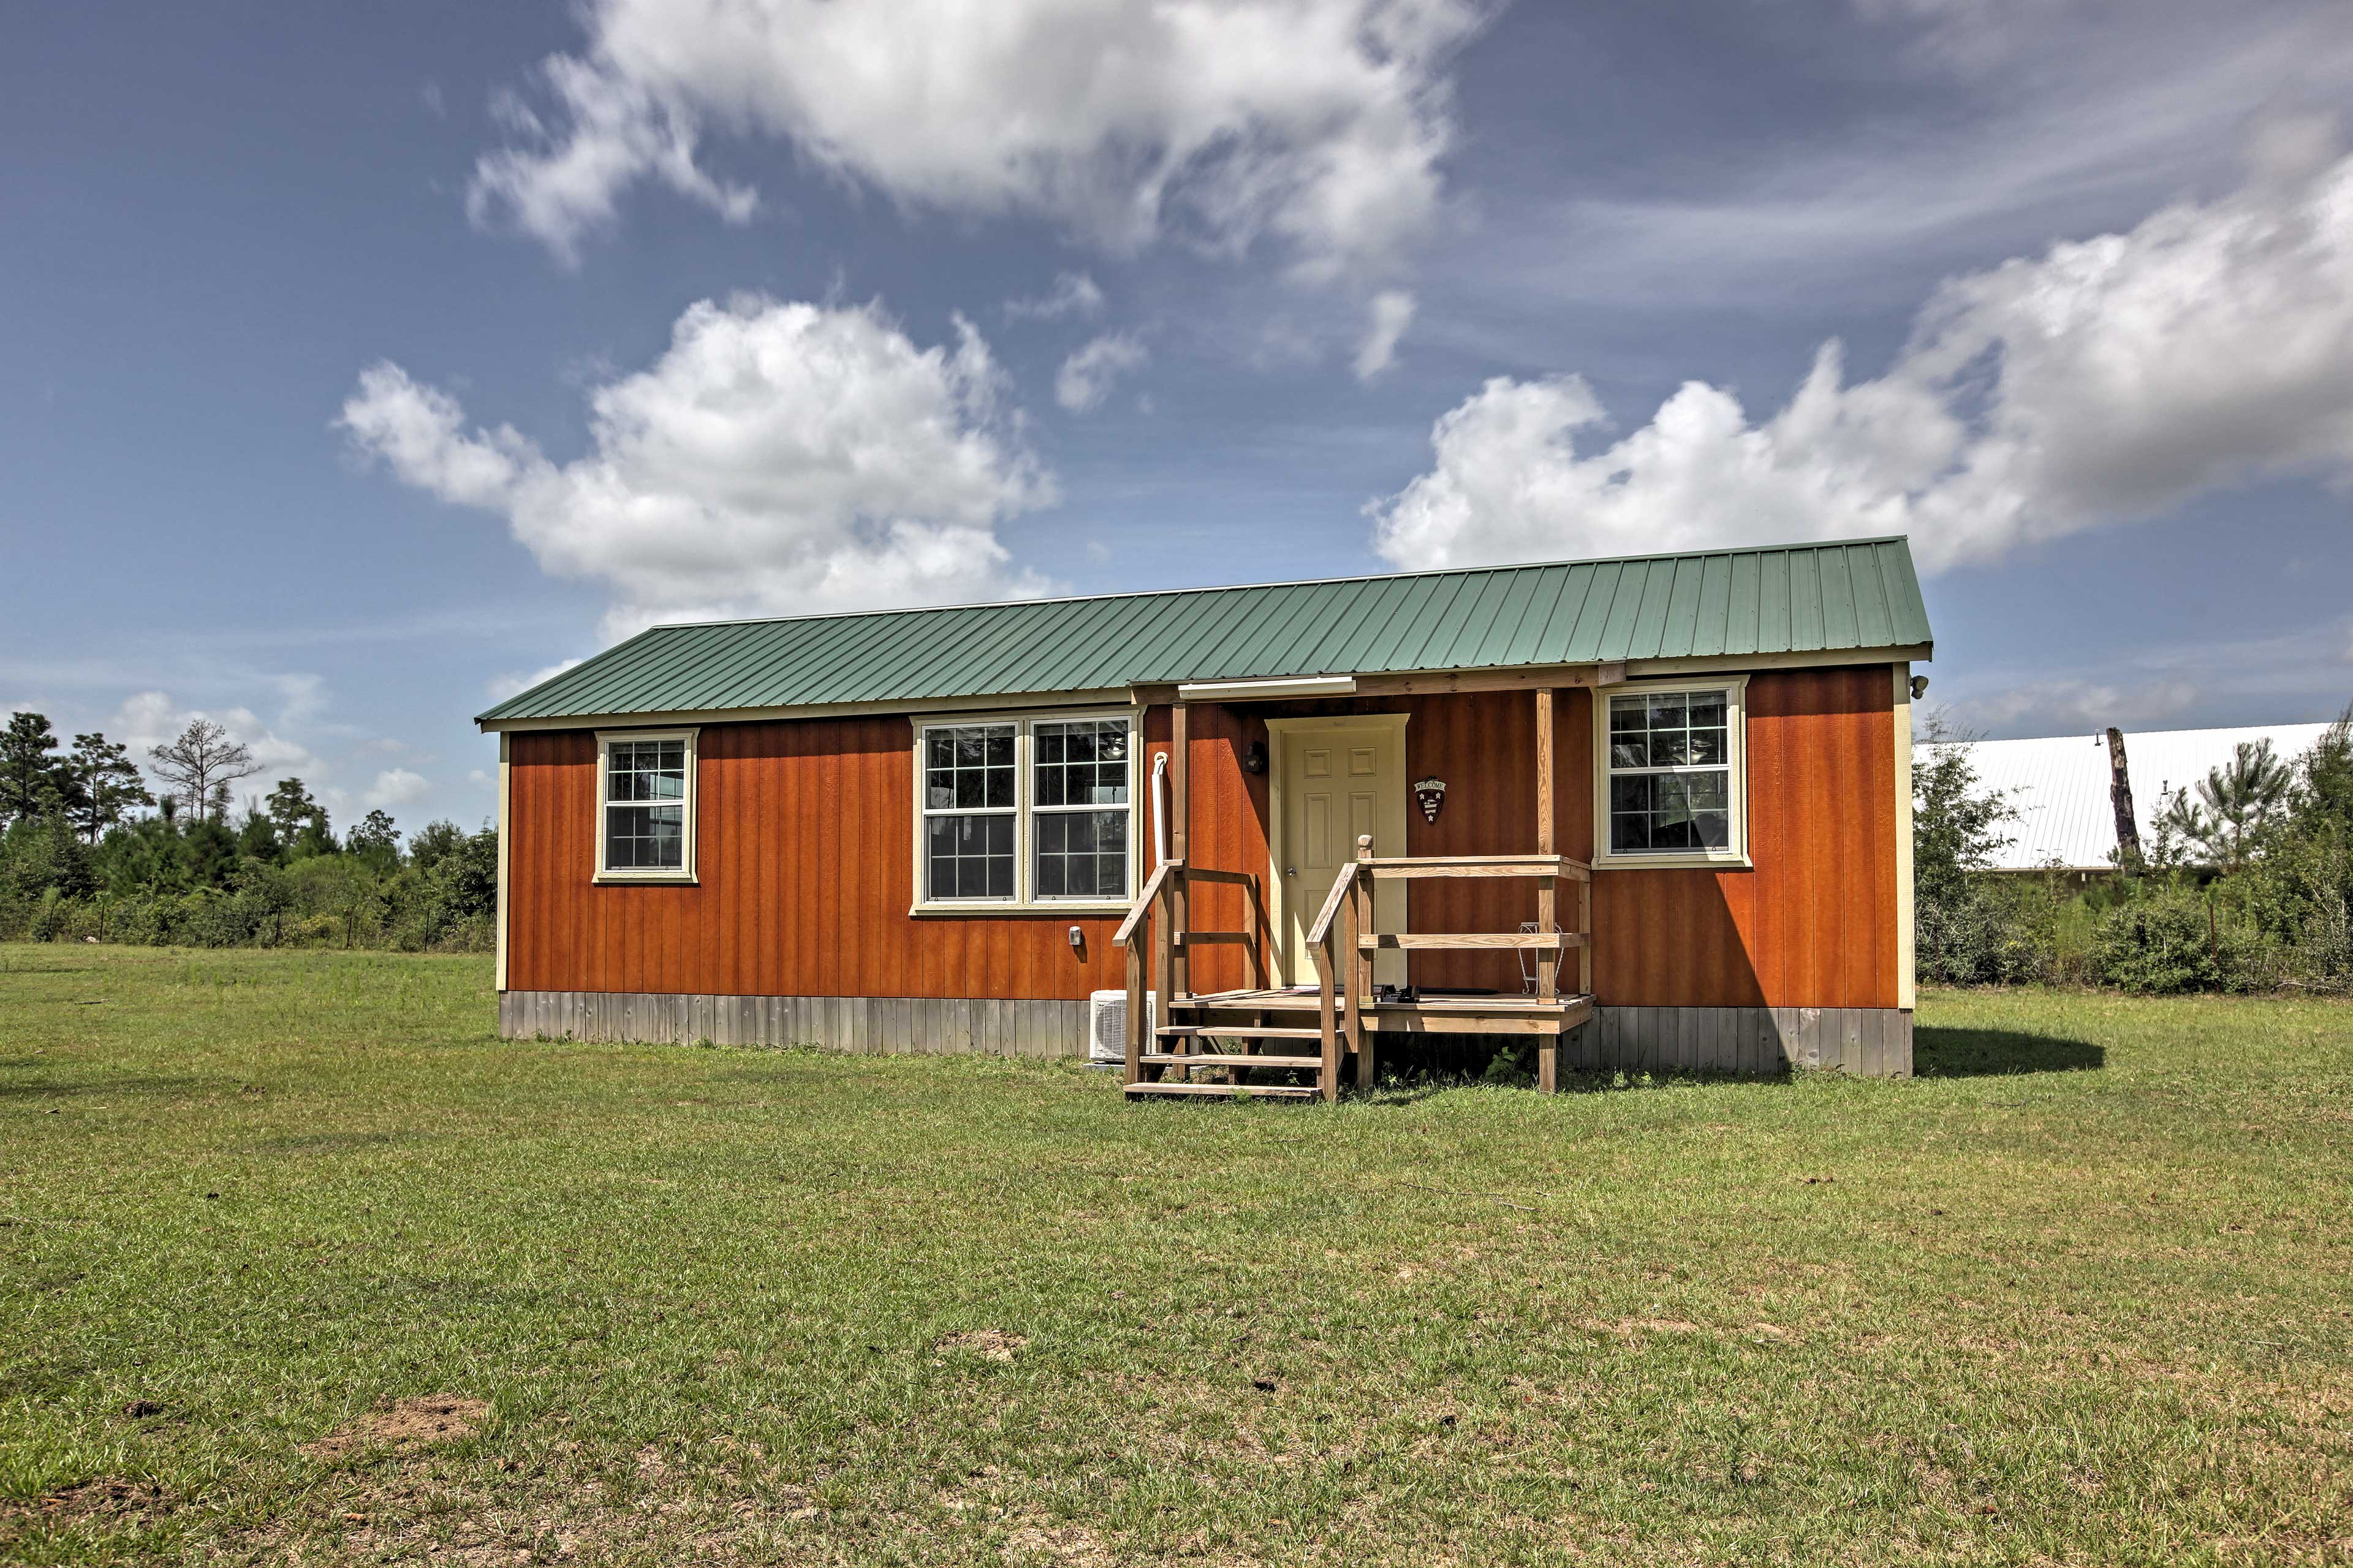 This cabin sits amidst vast farmland for you to explore.